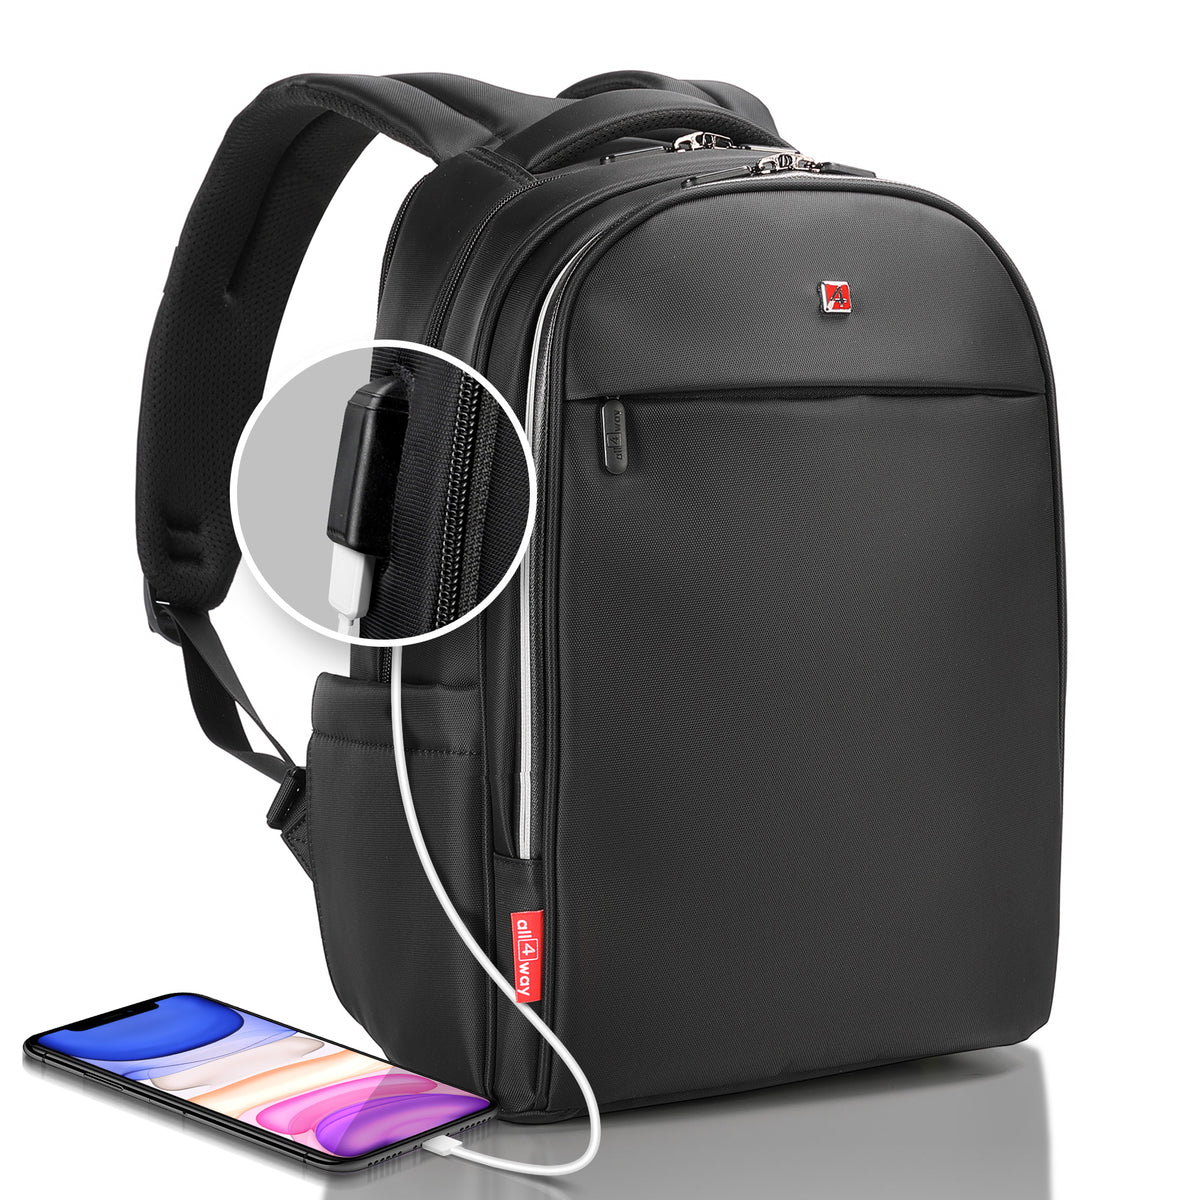 Best business laptop backpack, professional or gaming, for work, travel, college. Anti theft, with rfid protection and external usb port. 15 and 17 inch available in black color. Waterproof, stylish and lightweight.  Slim, minimalist, compact bag.